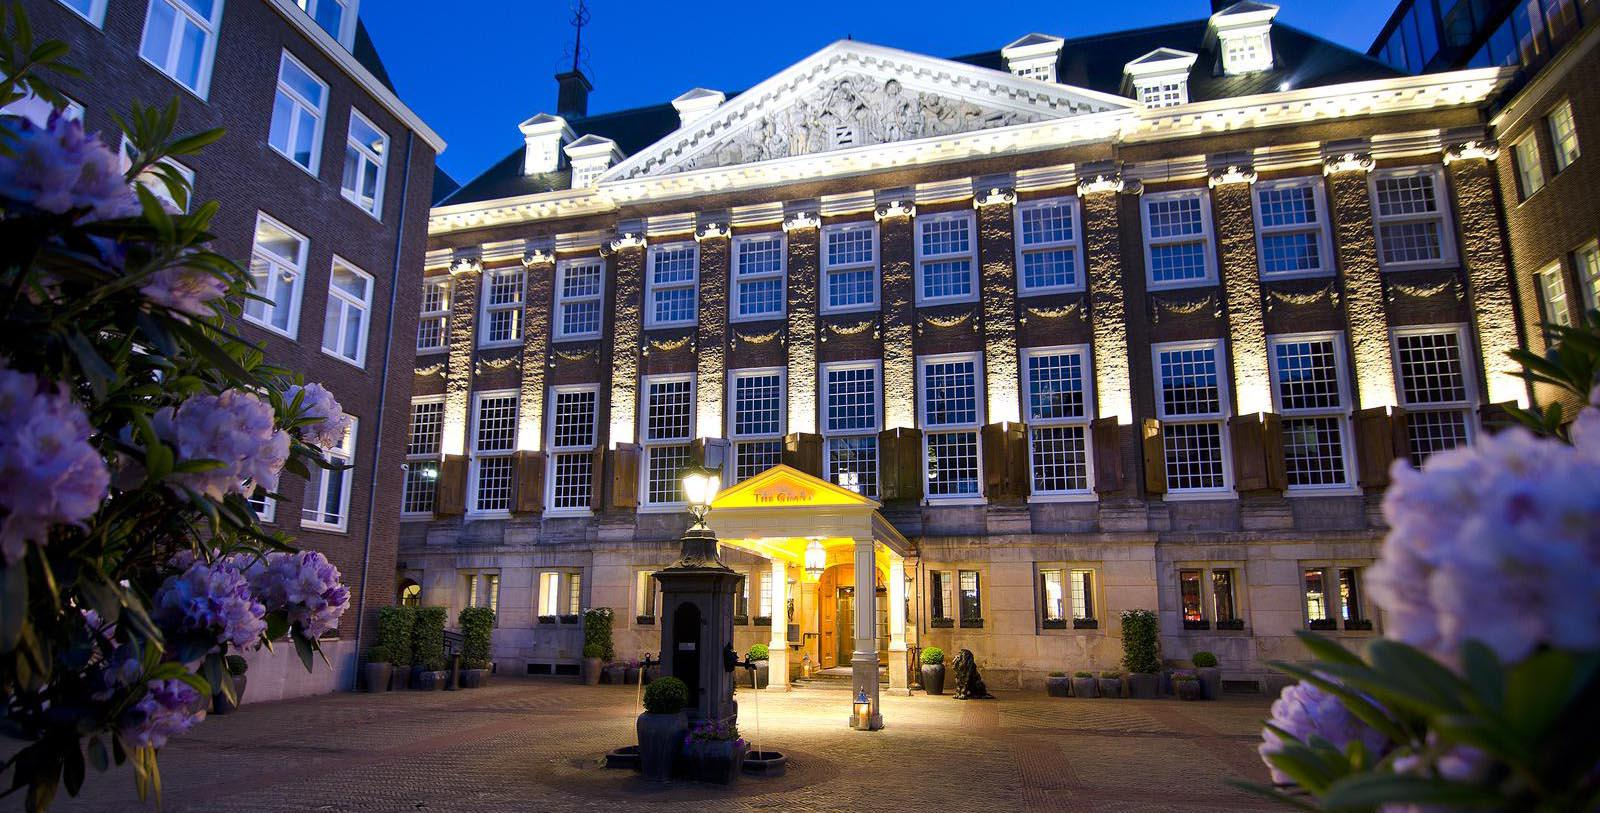 Image of Hotel Exterior Sofitel Legend The Grand Amsterdam, 1578, Member of Historic Hotels Worldwide, in Amsterdam, Netherlands, Special Offers, Discounted Rates, Families, Romantic Escape, Honeymoons, Anniversaries, Reunions